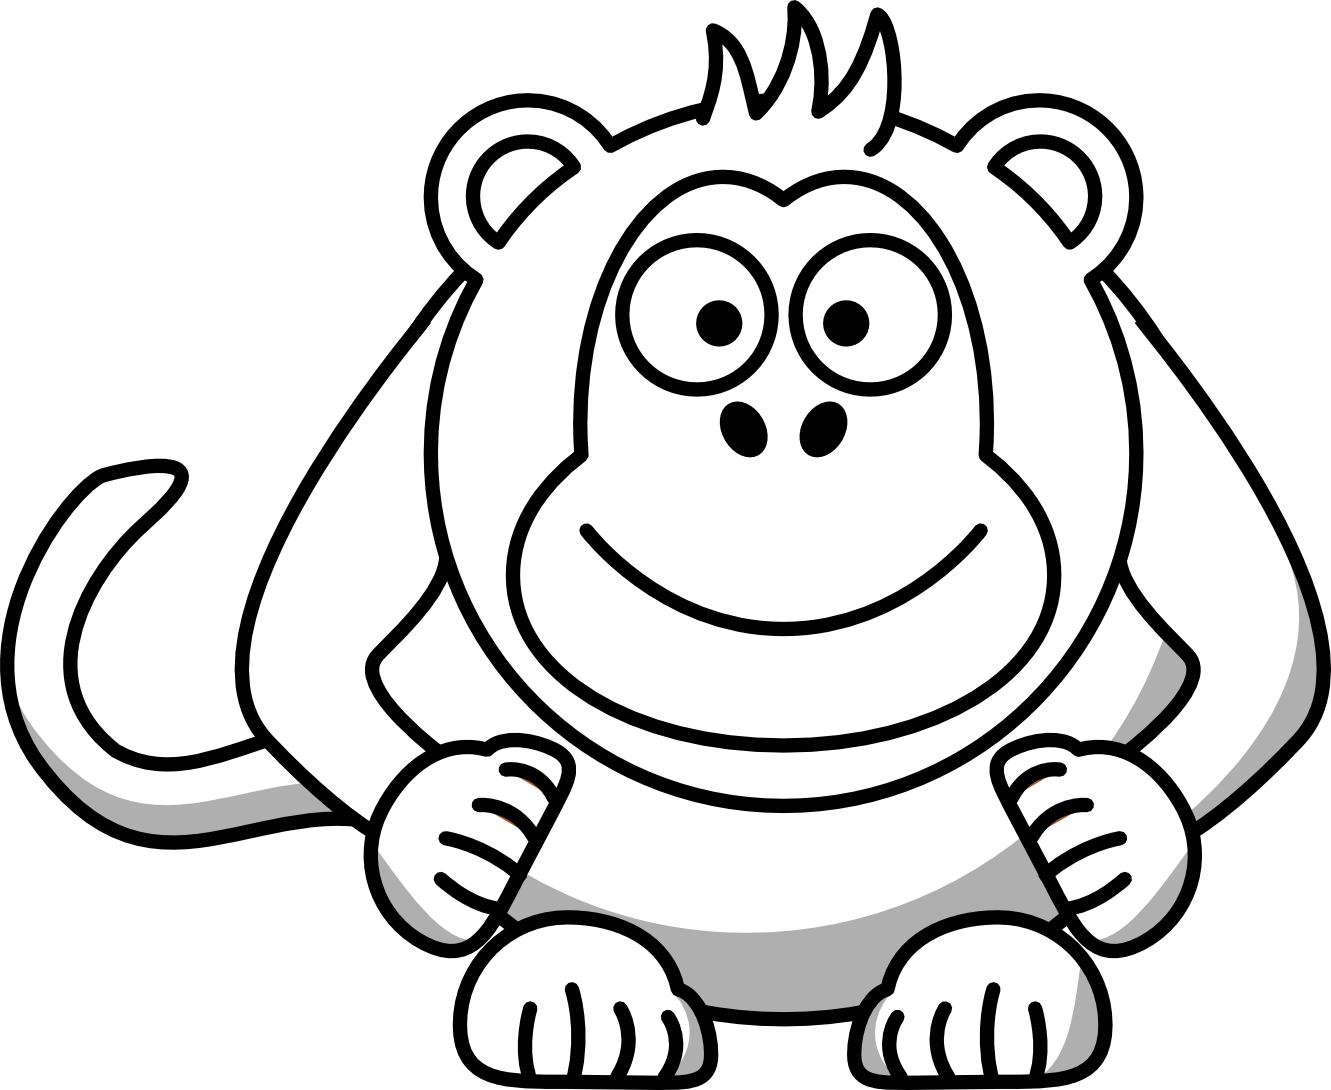 1331x1090 Monkey Clip Art Black And White Clipart Panda